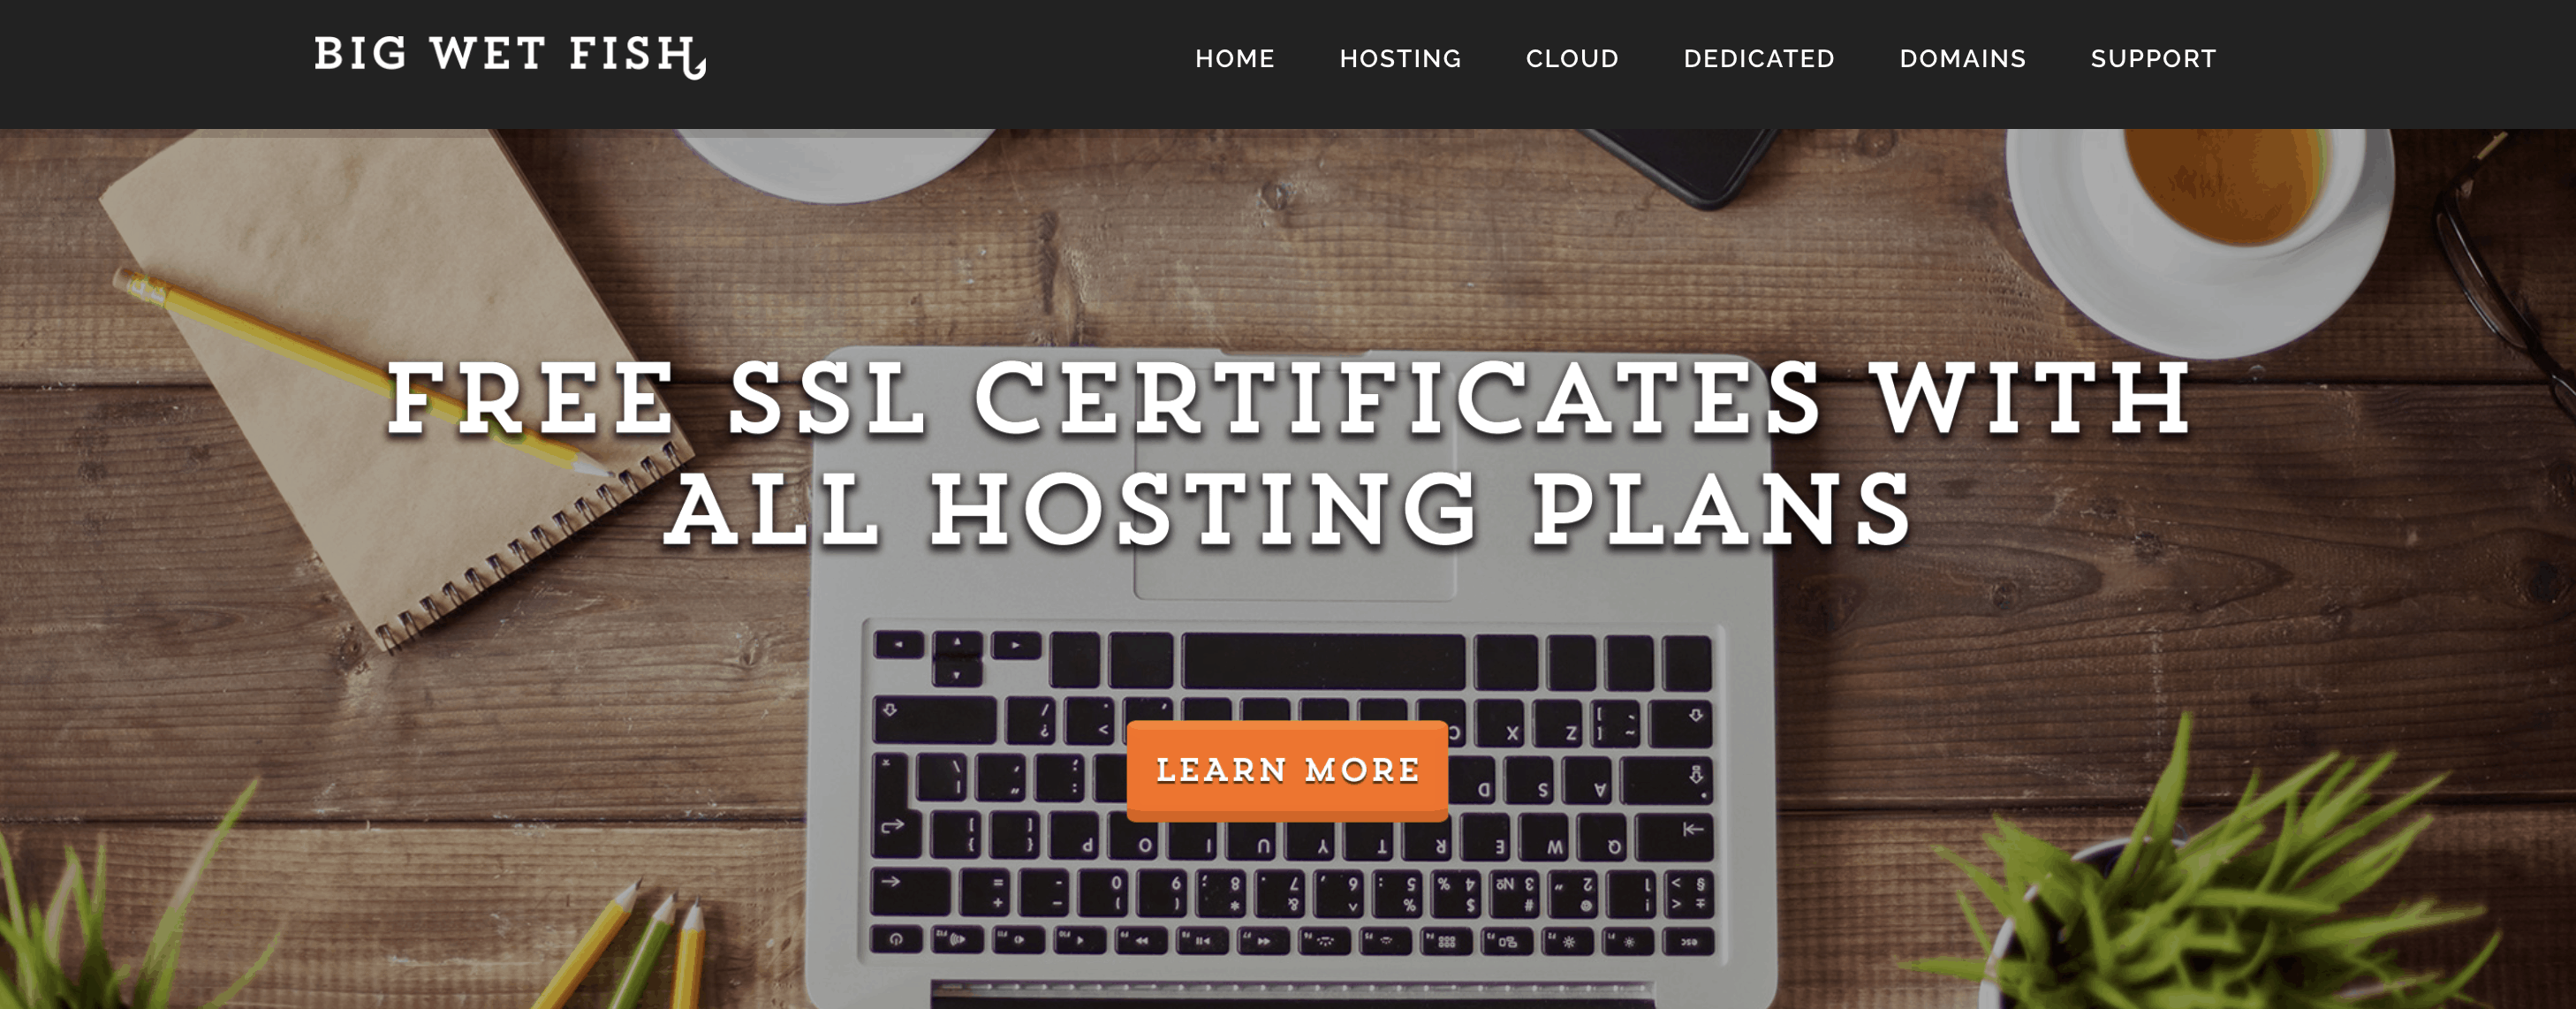 Website hosting by BigWetFish